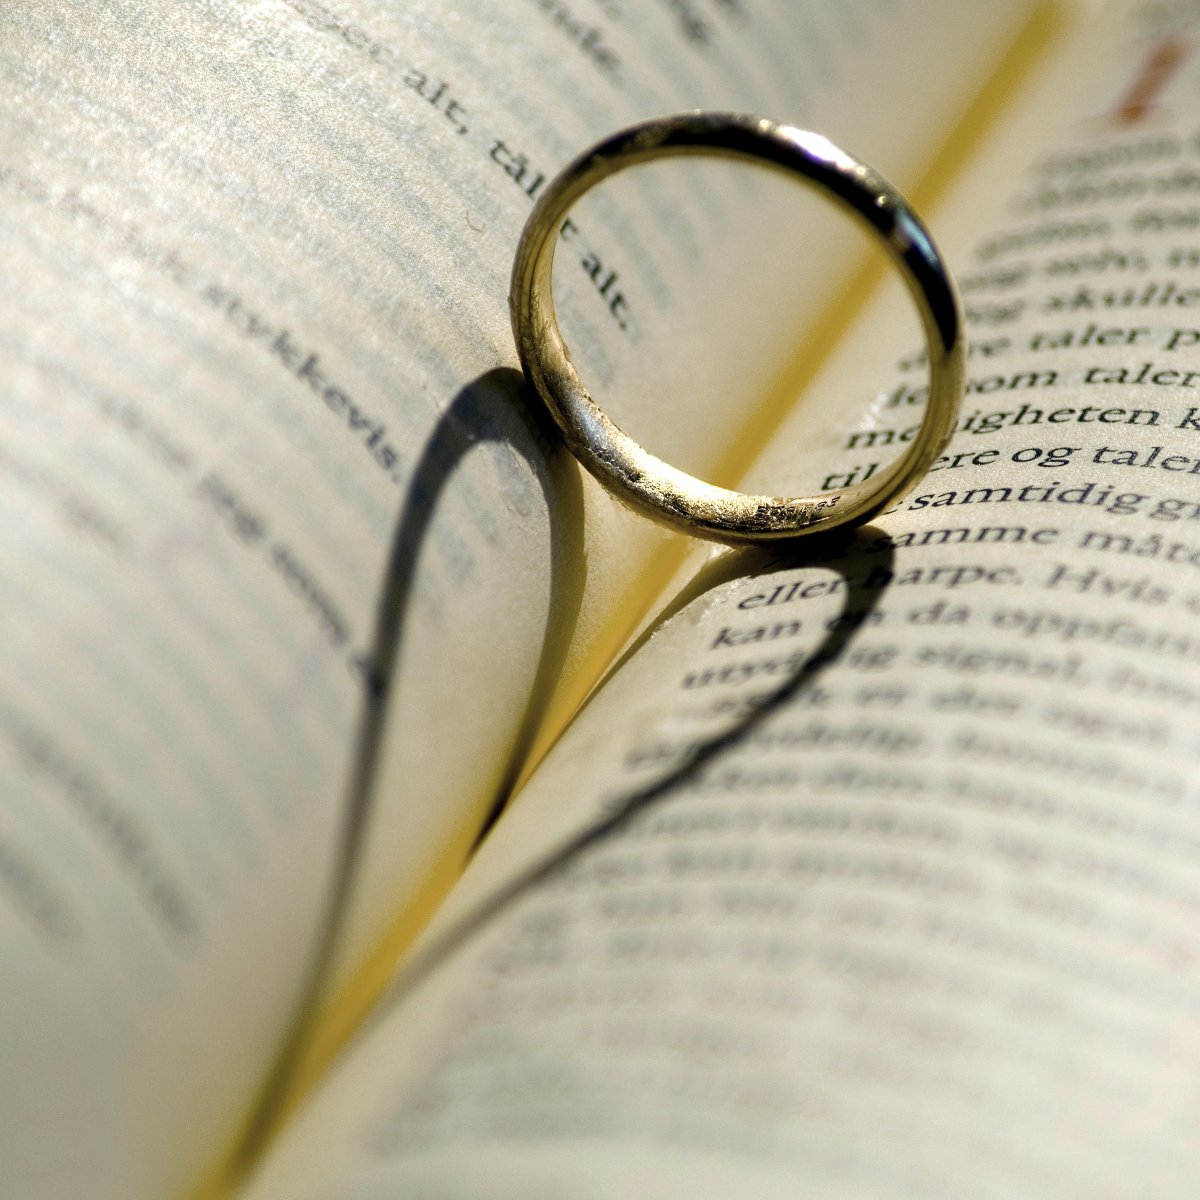 How Long Should Courtship Last Before Marriage? | HubPages